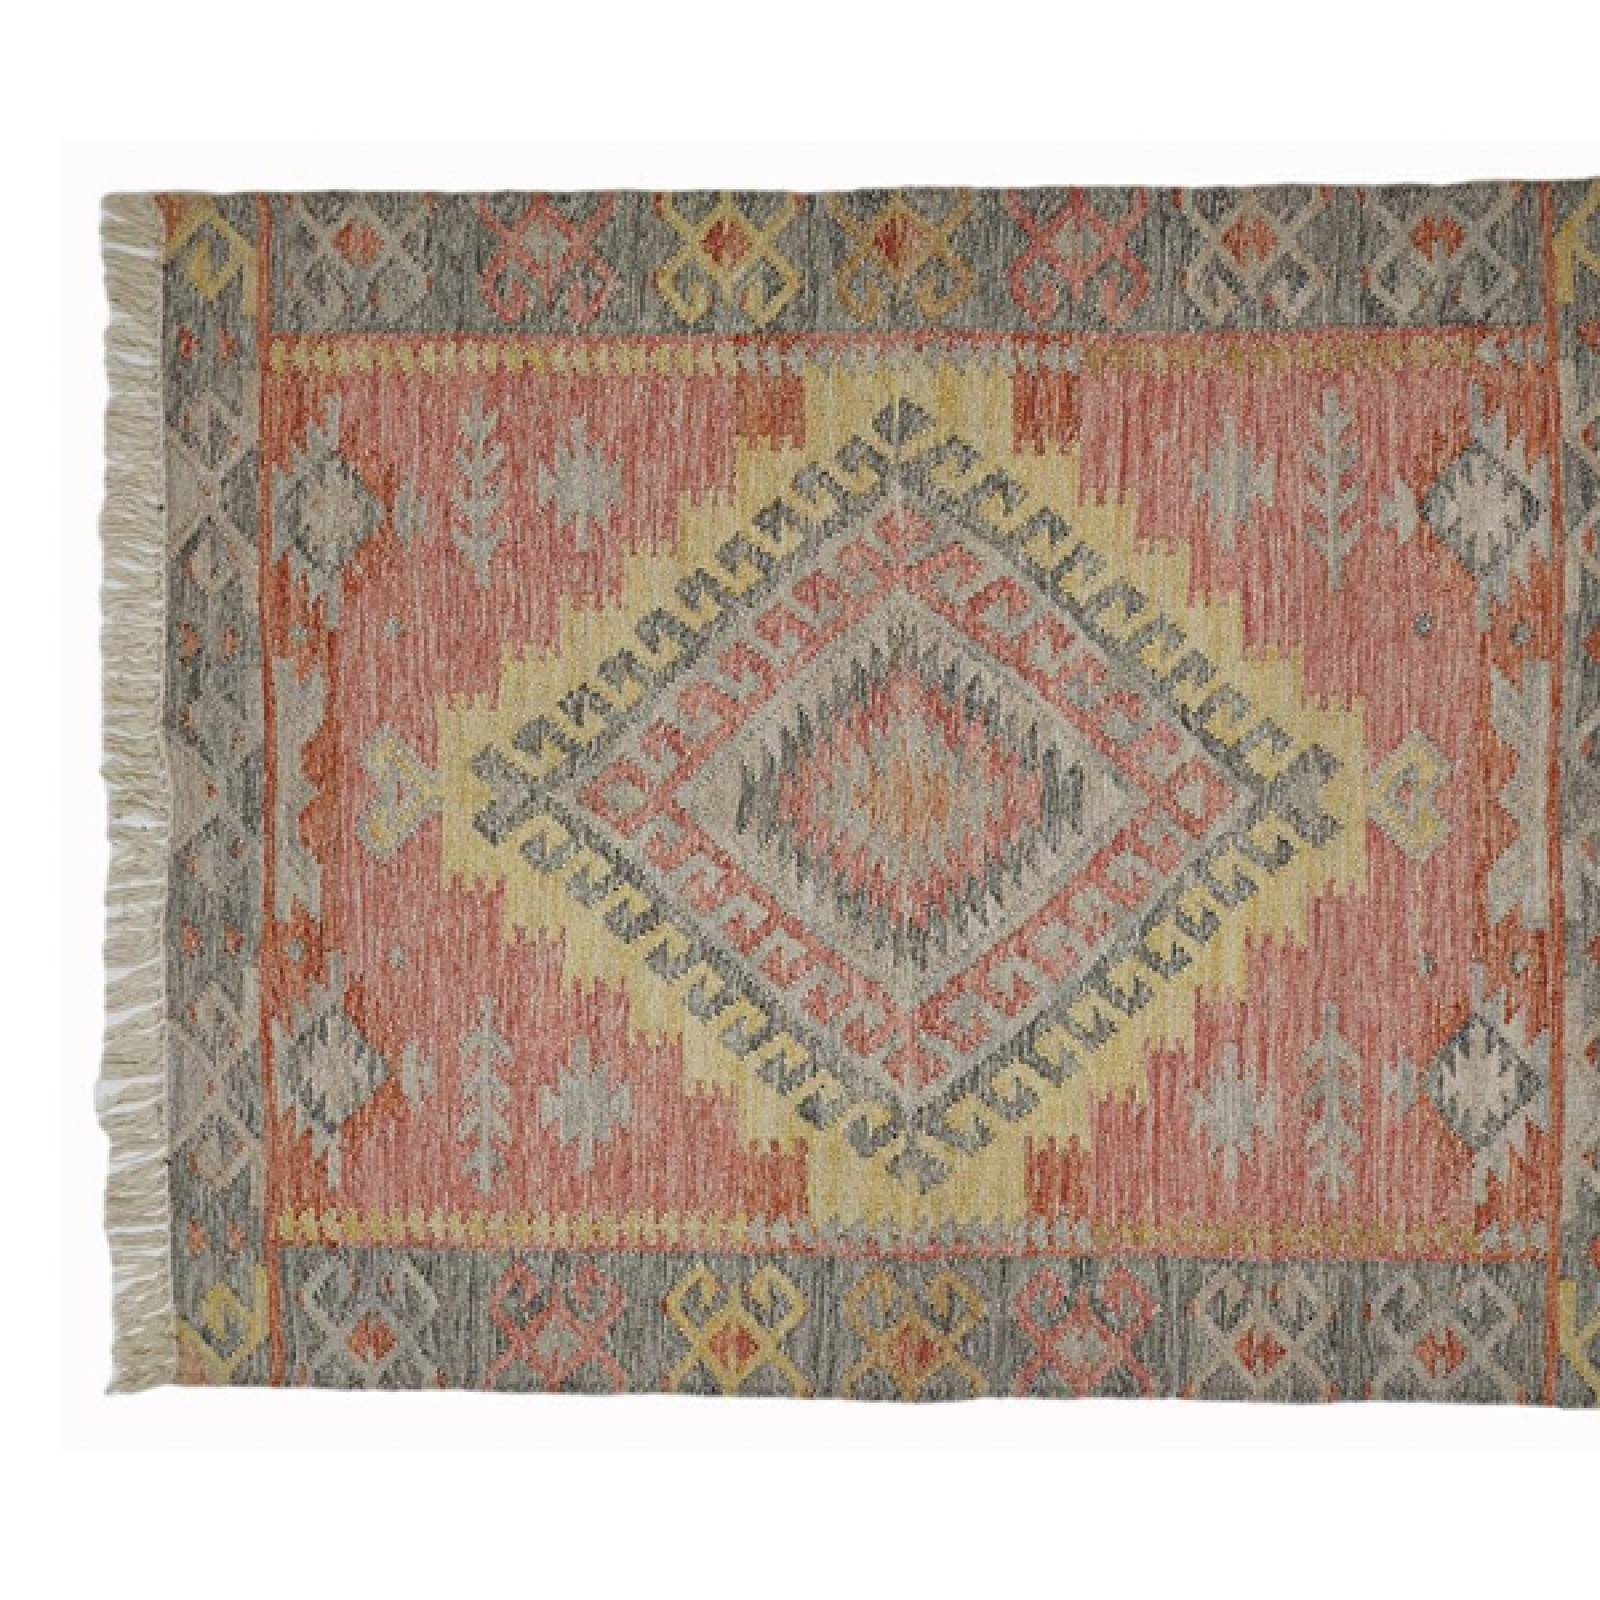 Tarifa Kilim Rug Runner 240x70cm Recycled Bottle Rug